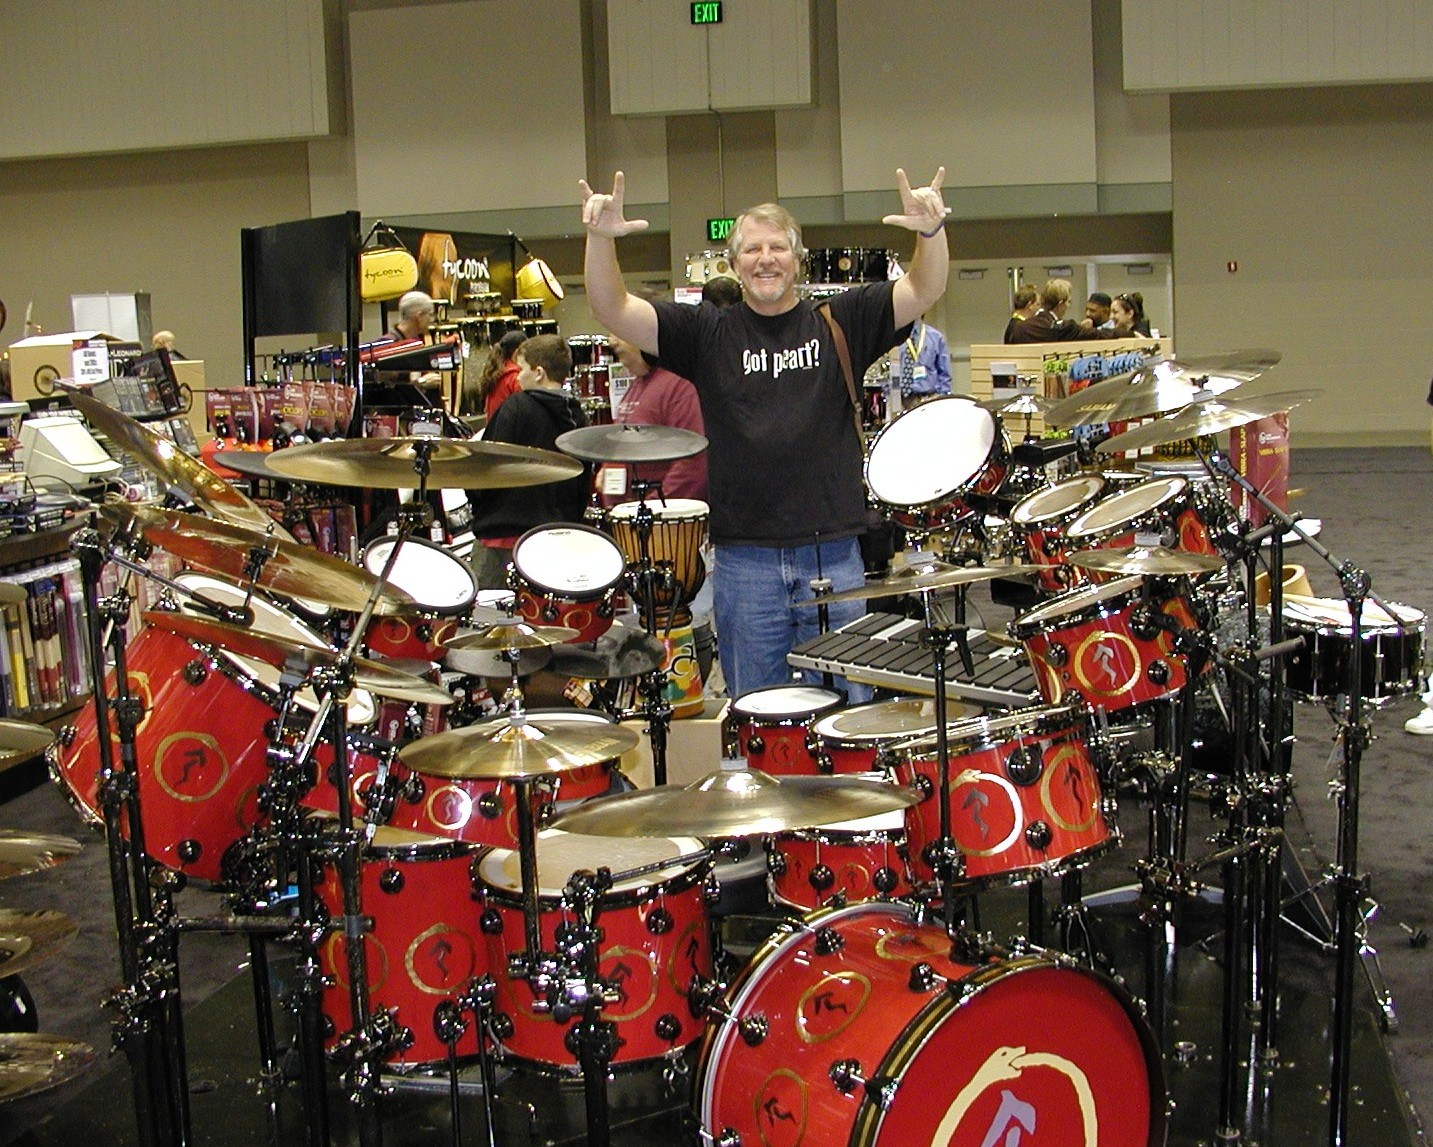 Doug Foley stands behind Peart's Snakes kit.